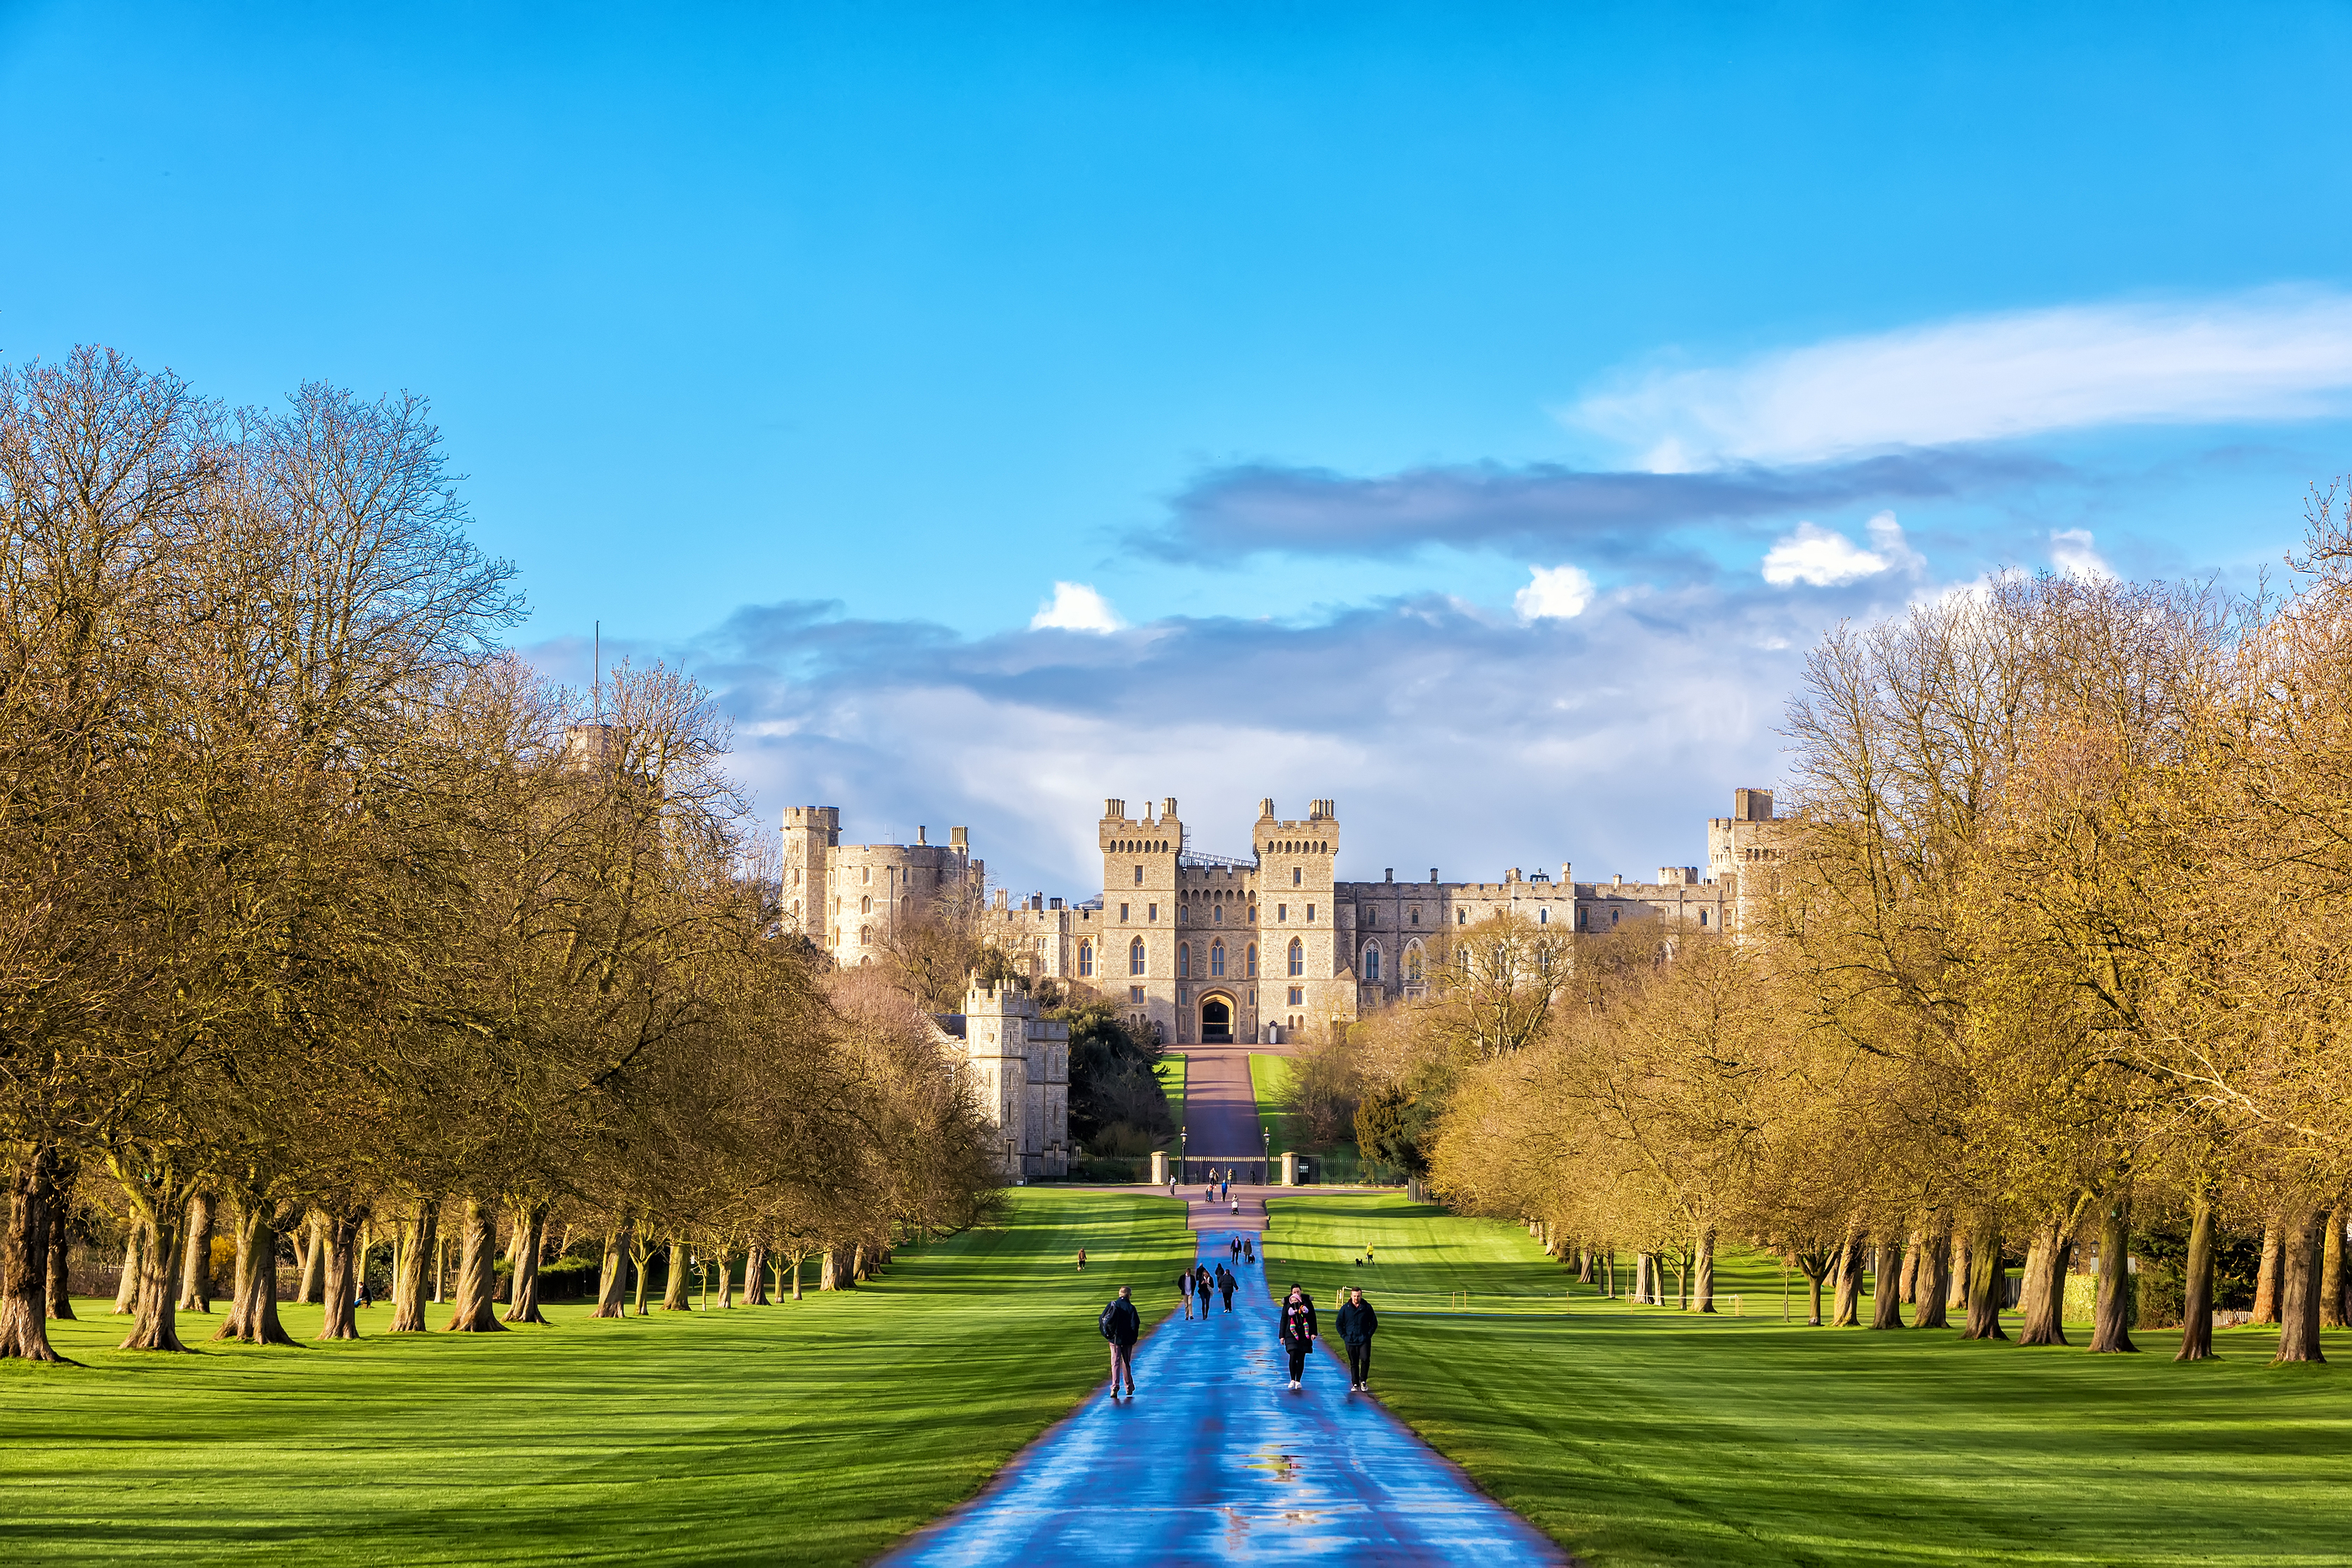 10 Things to do in Windsor at Harry's wedding